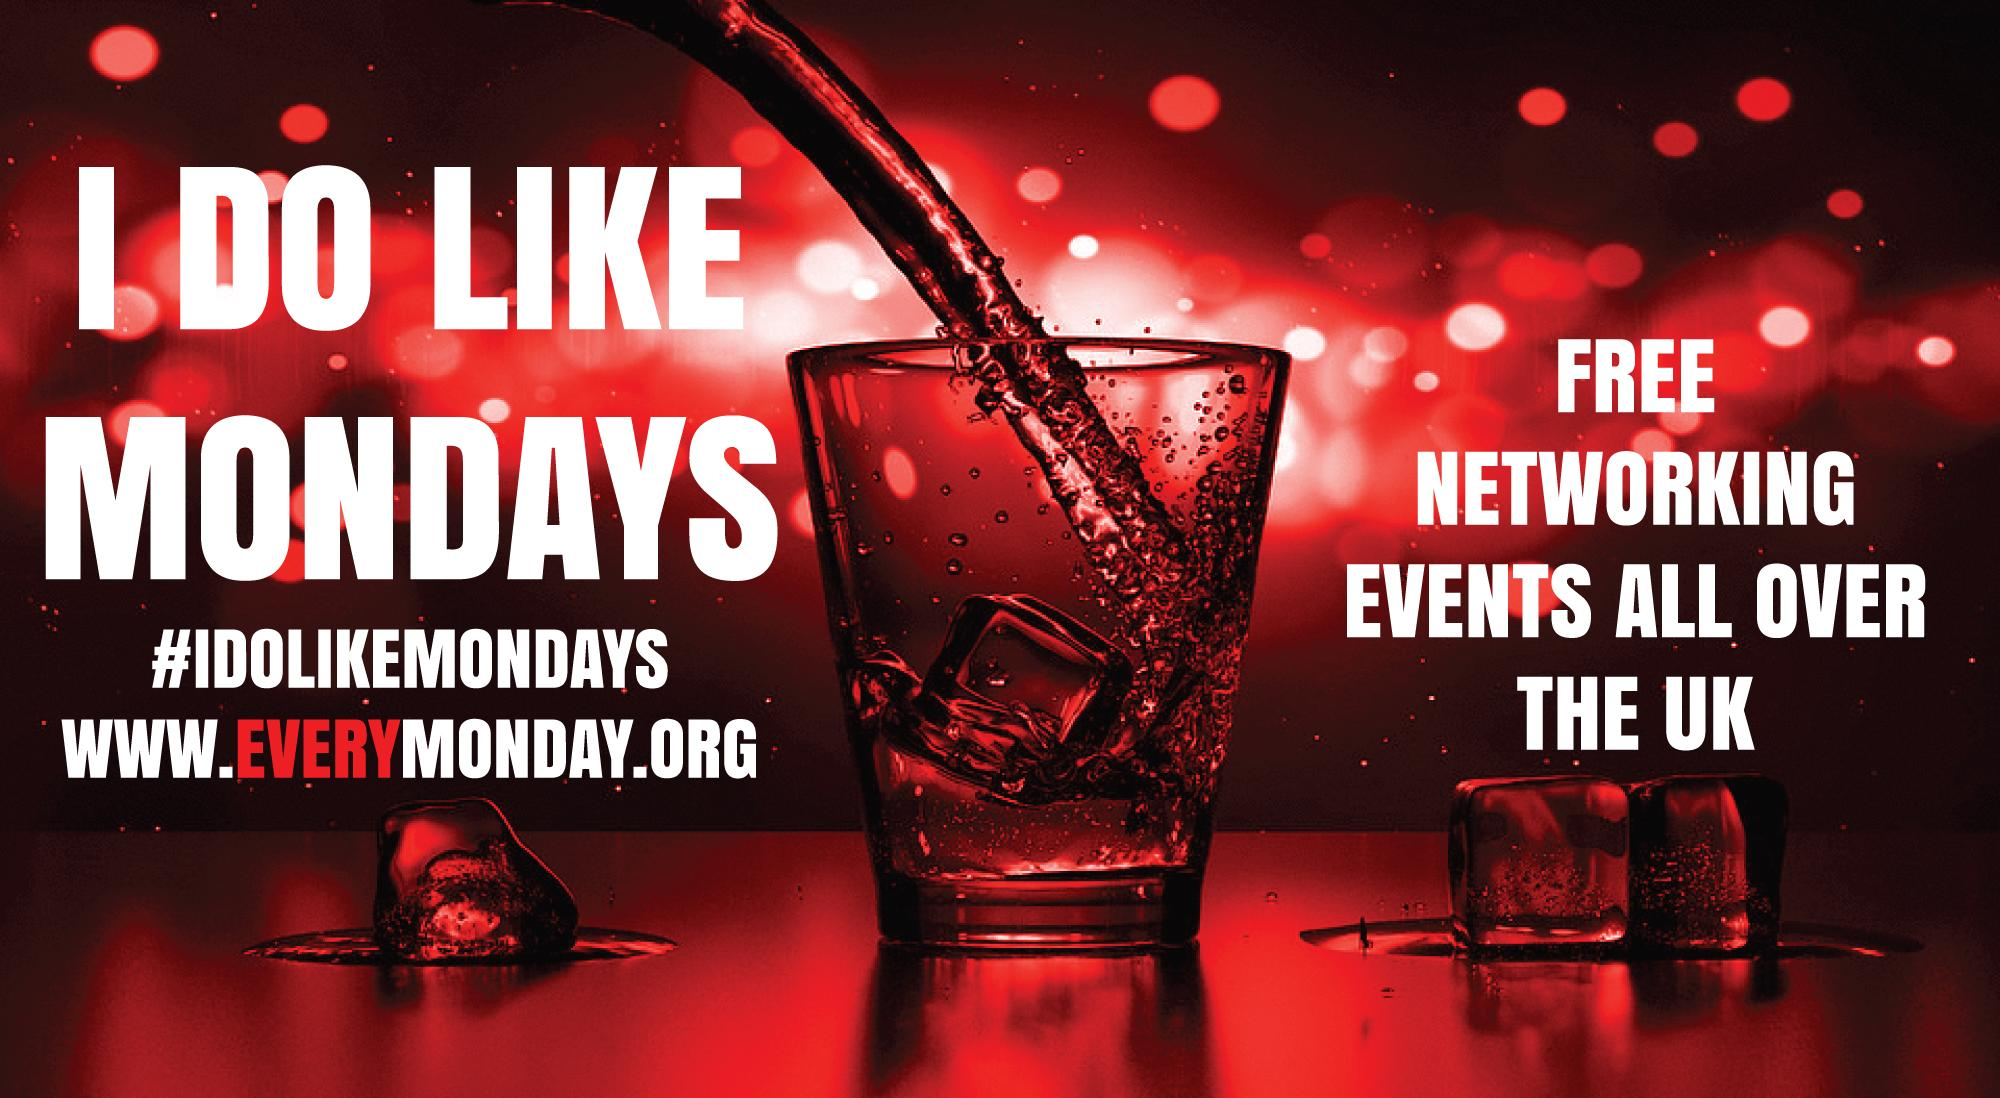 I DO LIKE MONDAYS! Free networking event in Rotherhithe